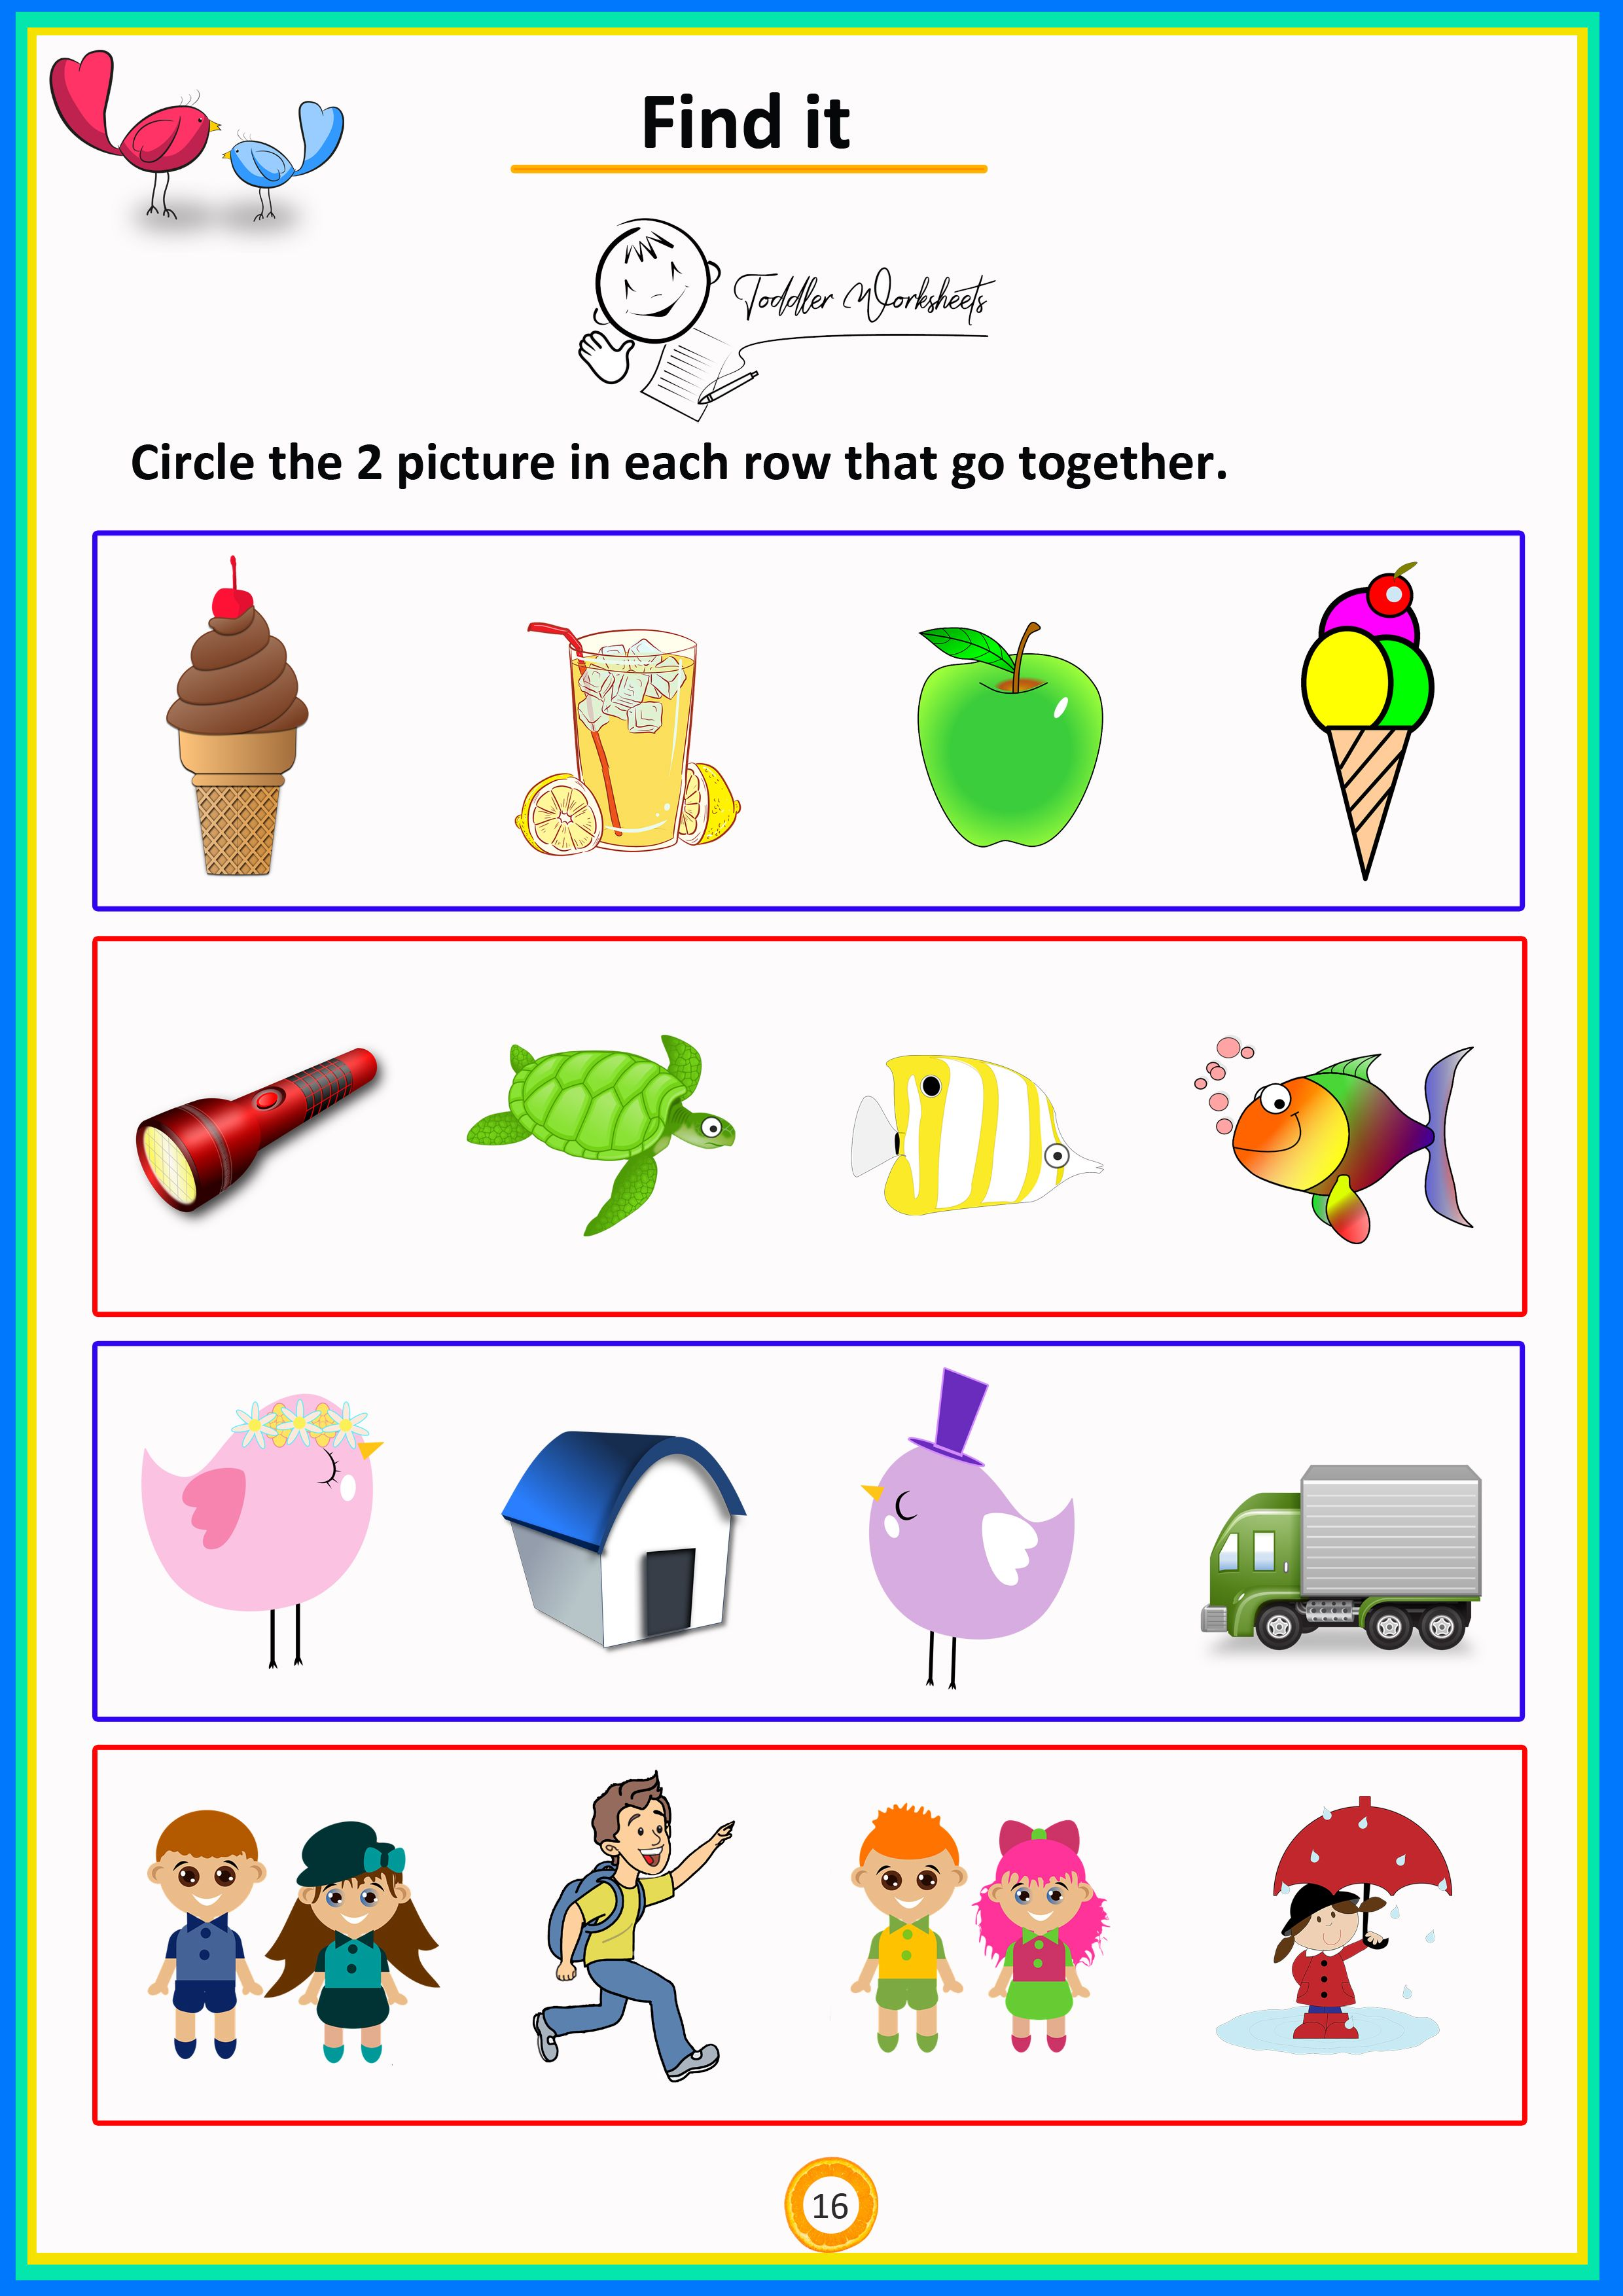 Find It 8 Simple Math Worksheets For Toddlers Preschoolers